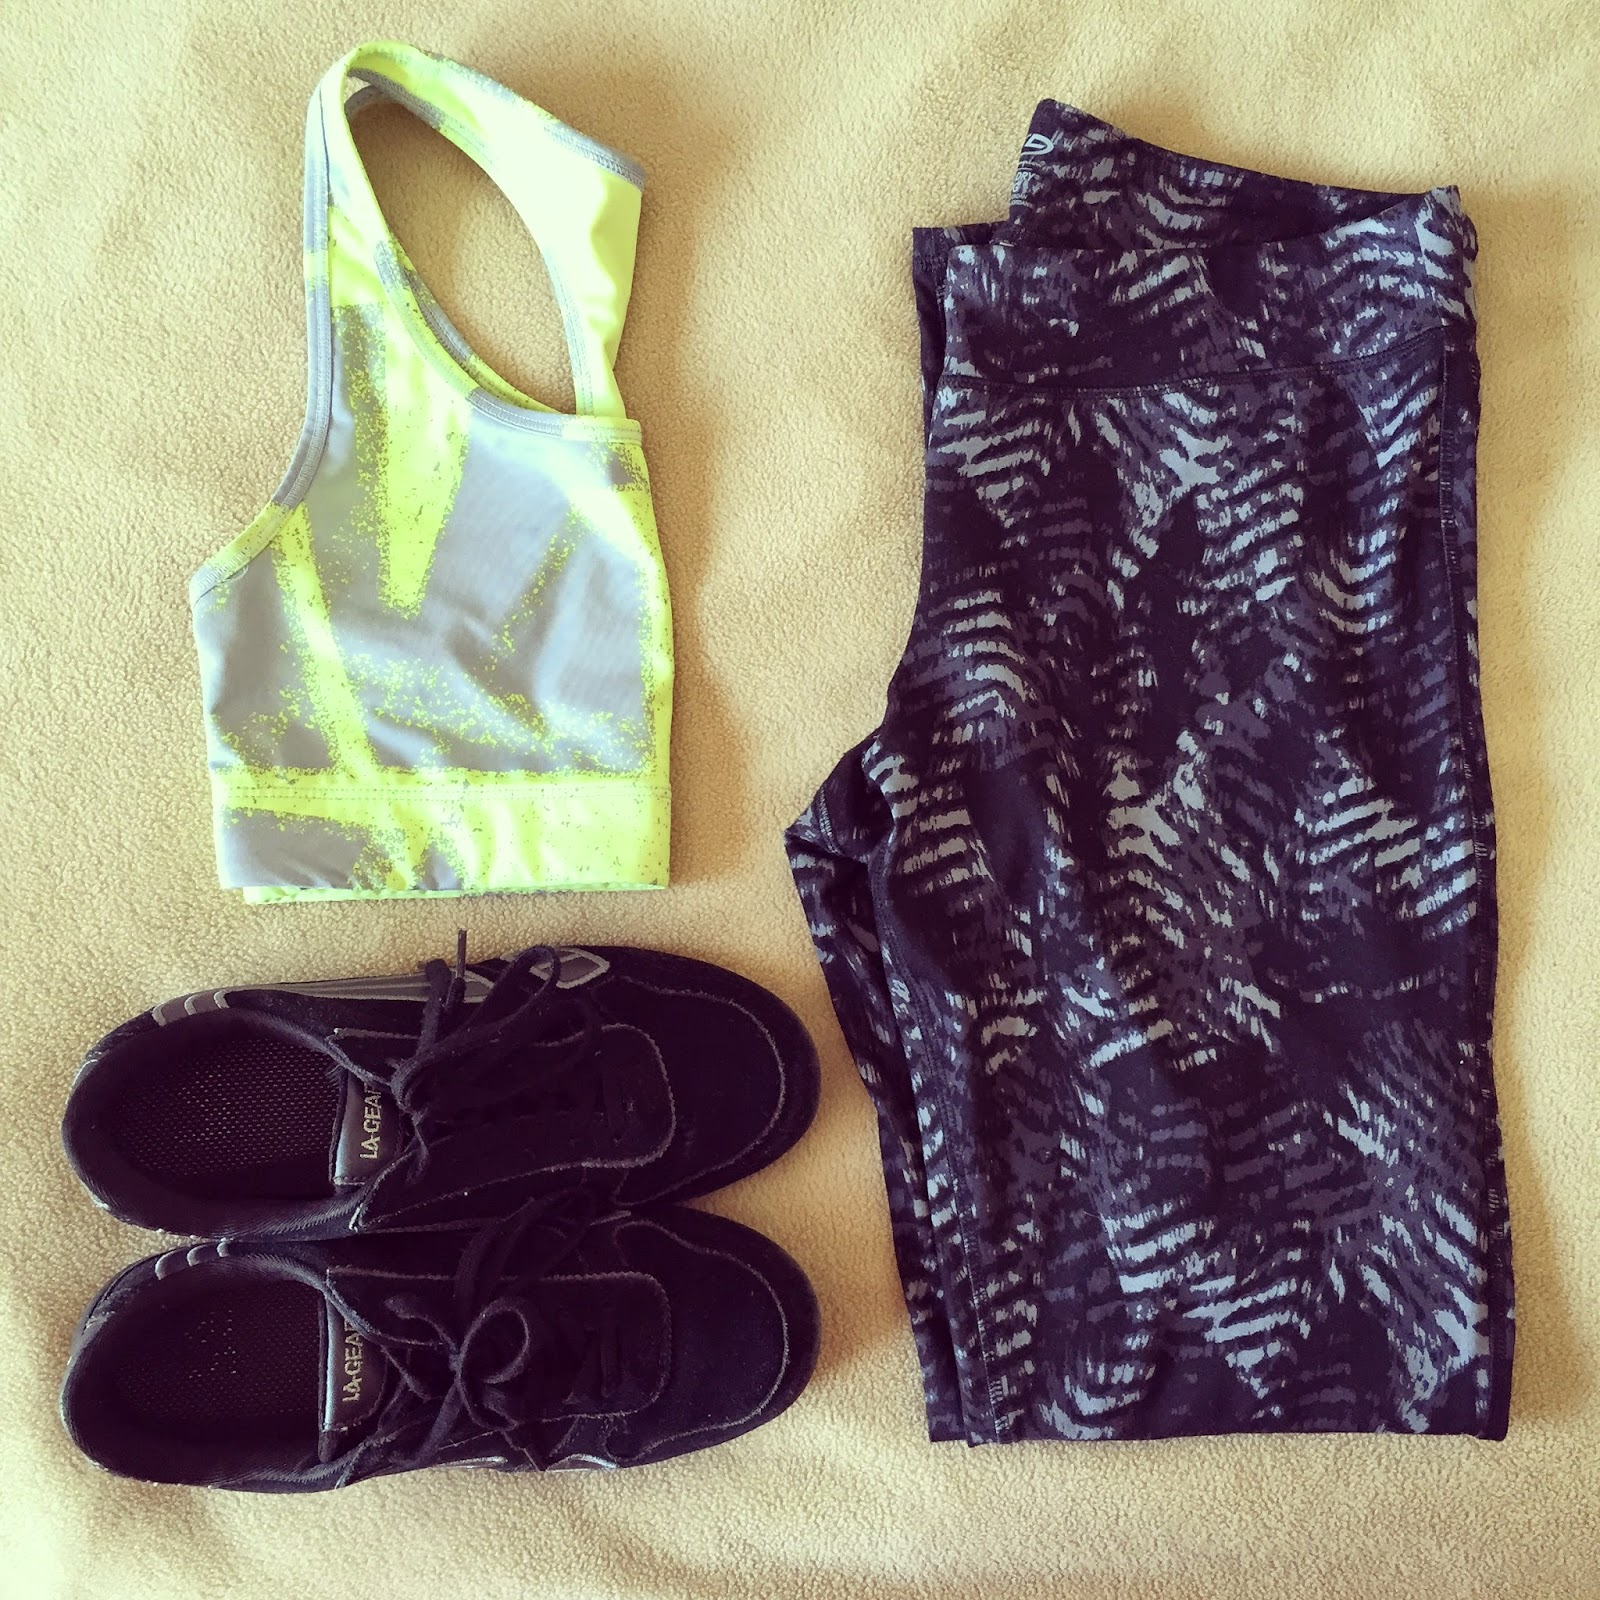 workout clothes for an outside run in spring